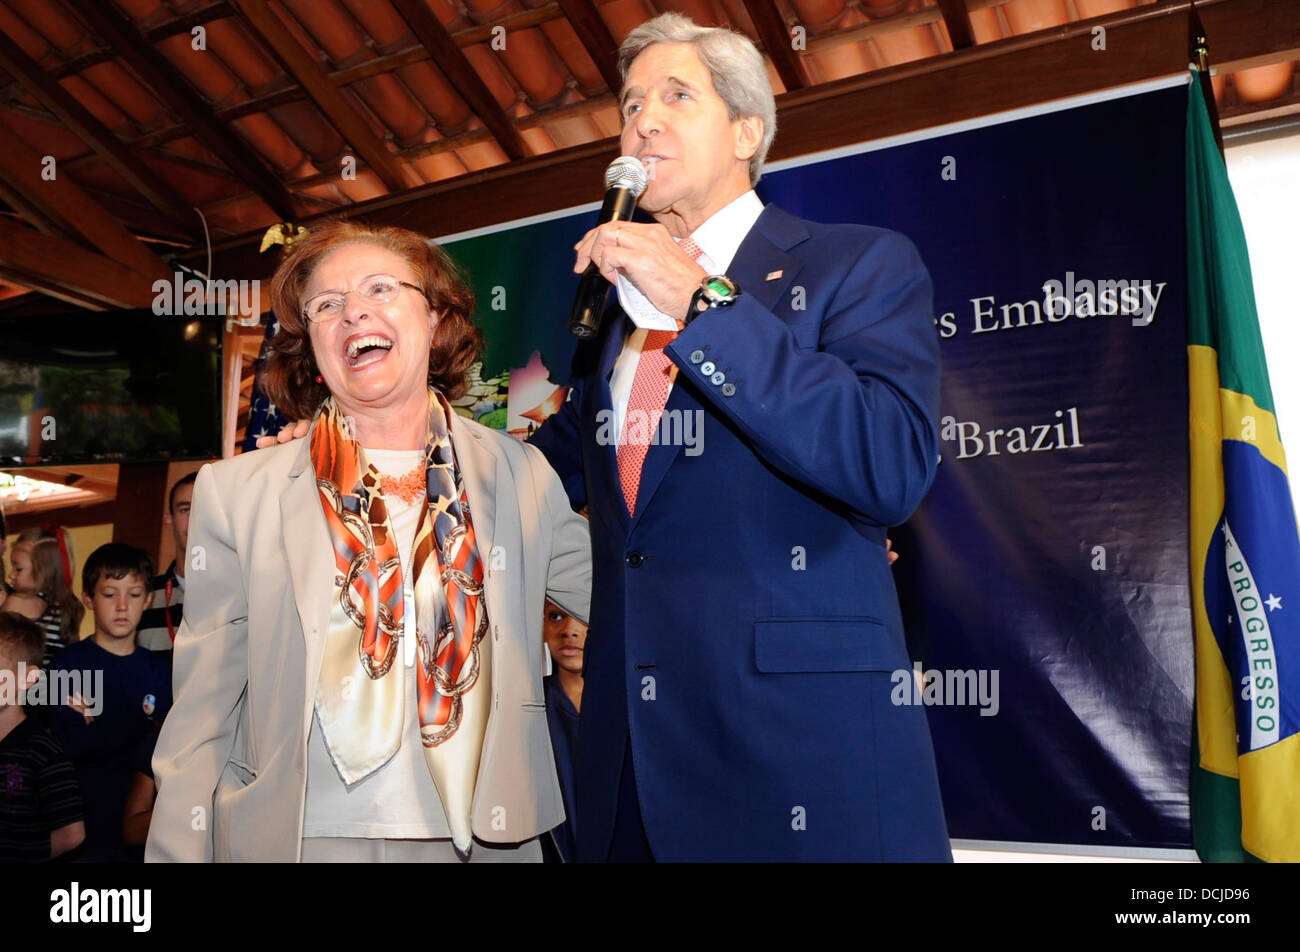 Secretary Kerry Acknowledges a Longtime Brazilian Consulate Employee - Stock Image